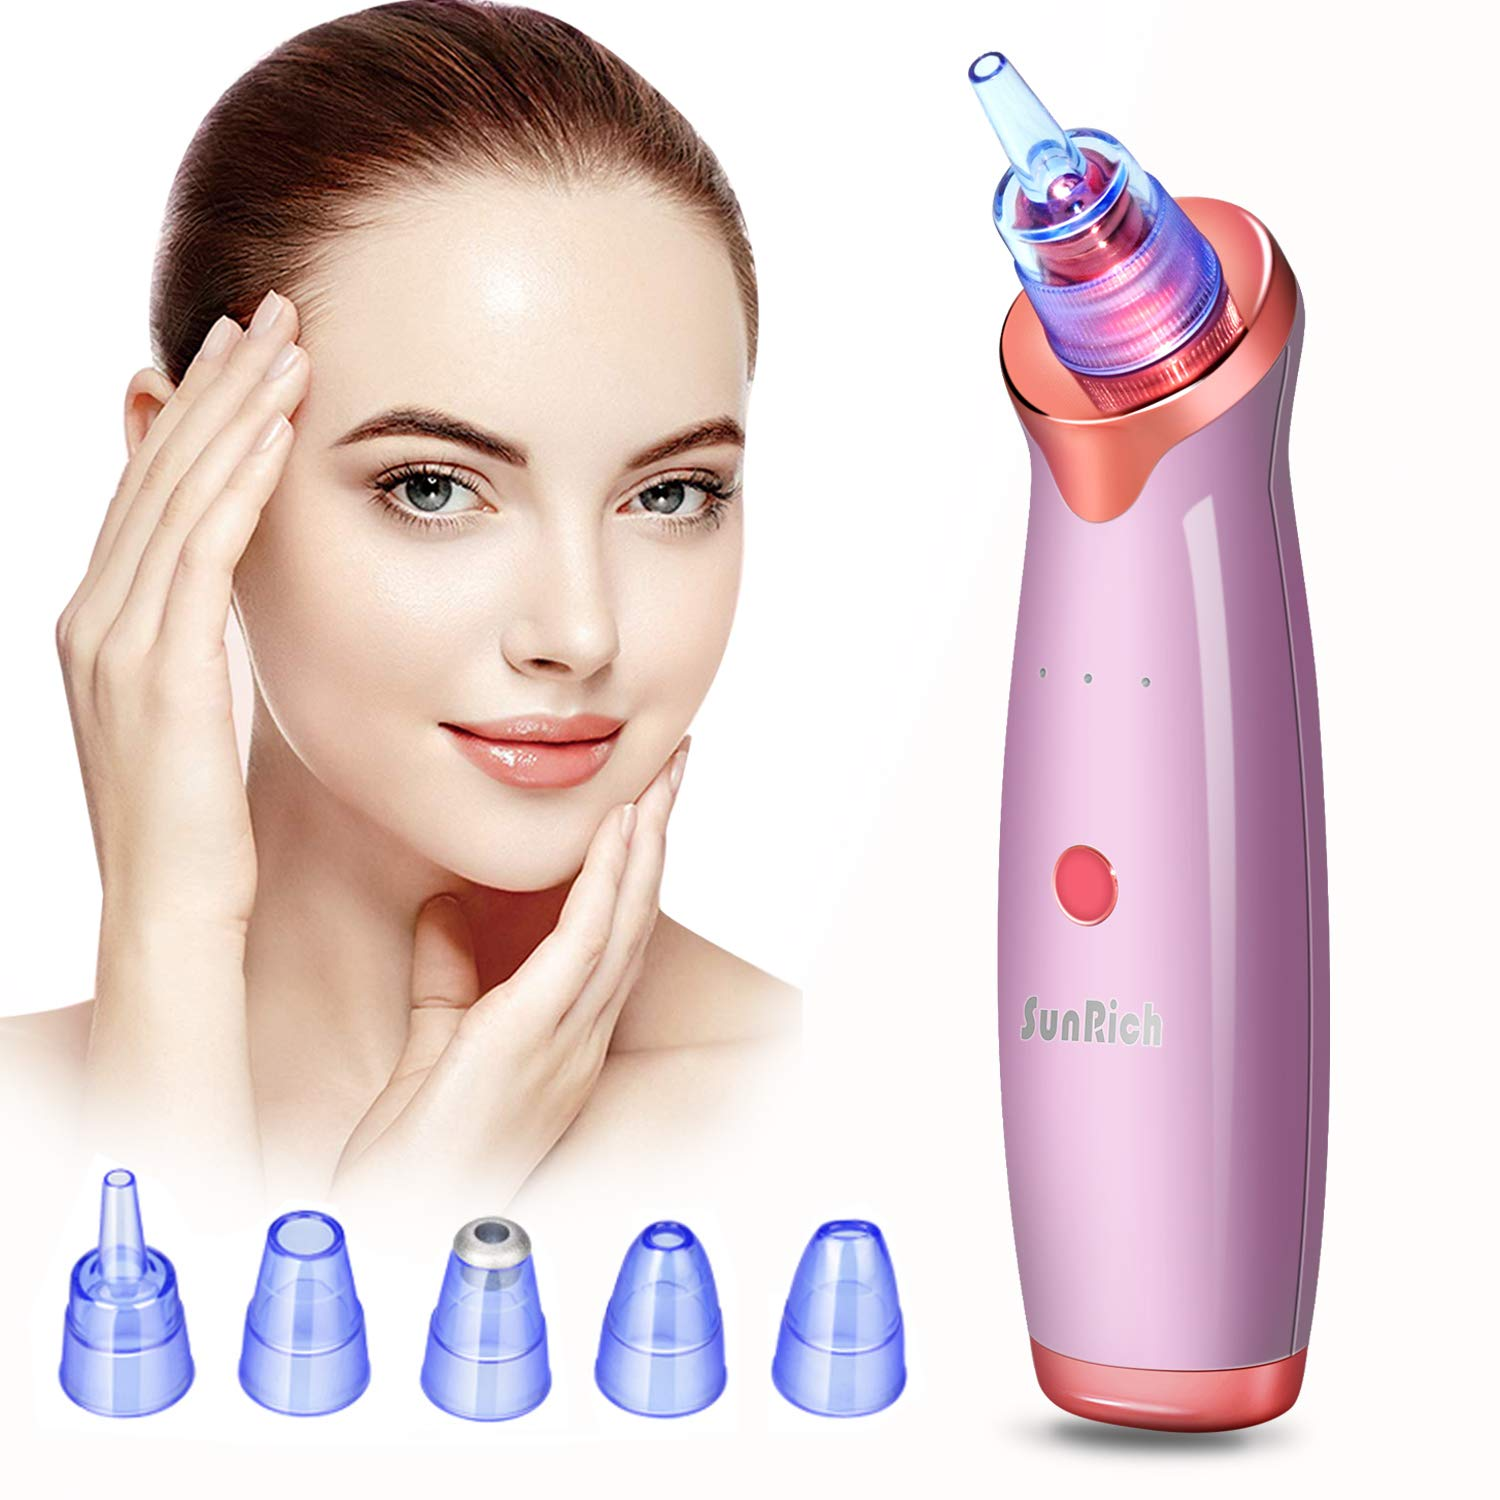 Blackhead Remover Pore Vacuum Electric Facial Acne Pimple Suction Vaccumm Removal Extractor Rechargeable with 5 Probes for Women Men Face Nose Black-Head White-Head Comedone